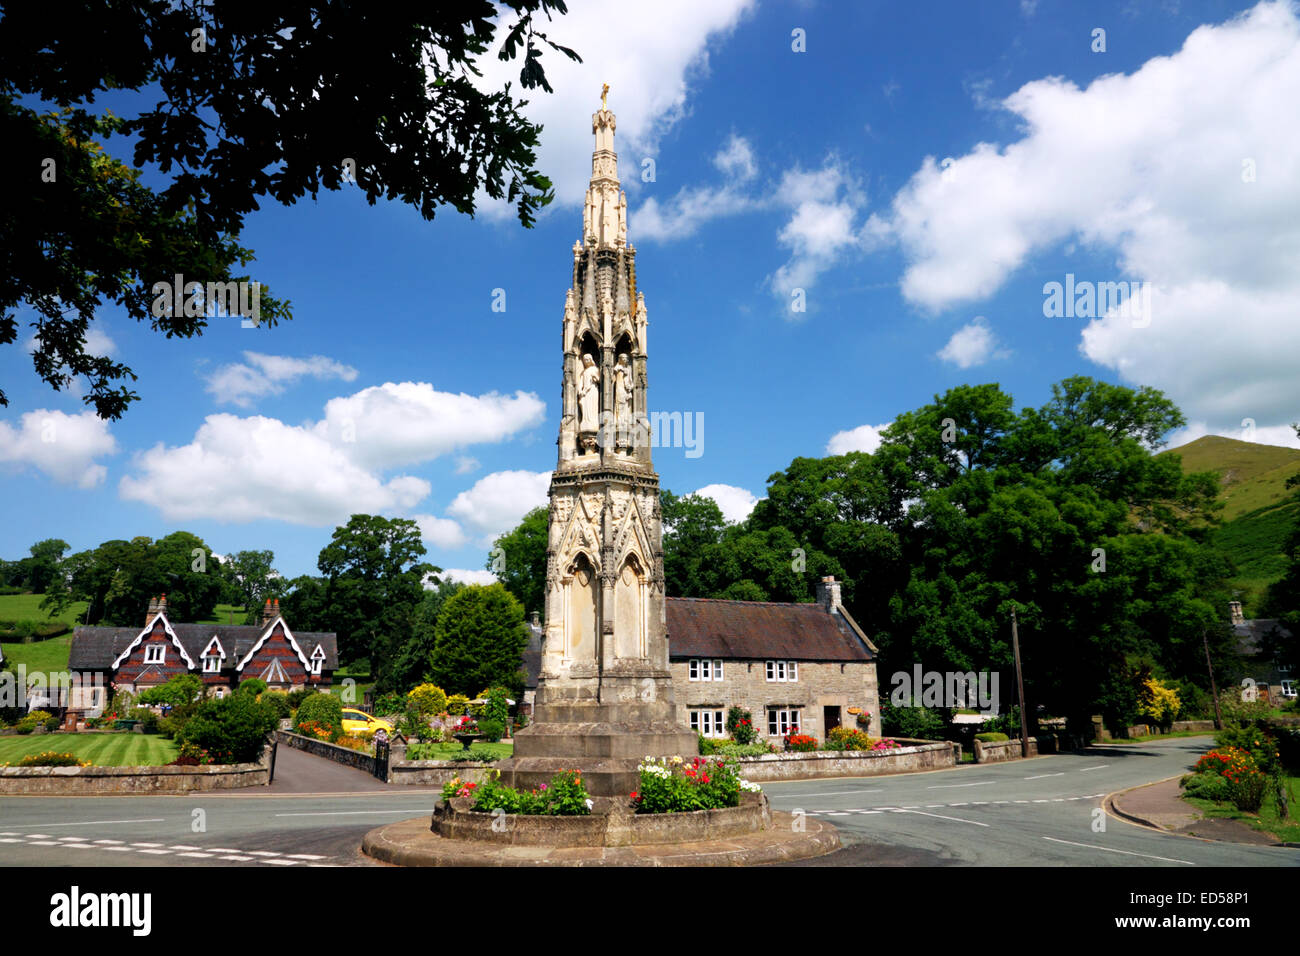 A tall Gothic monument on a roundabout with stone clad cottages behind. - Stock Image